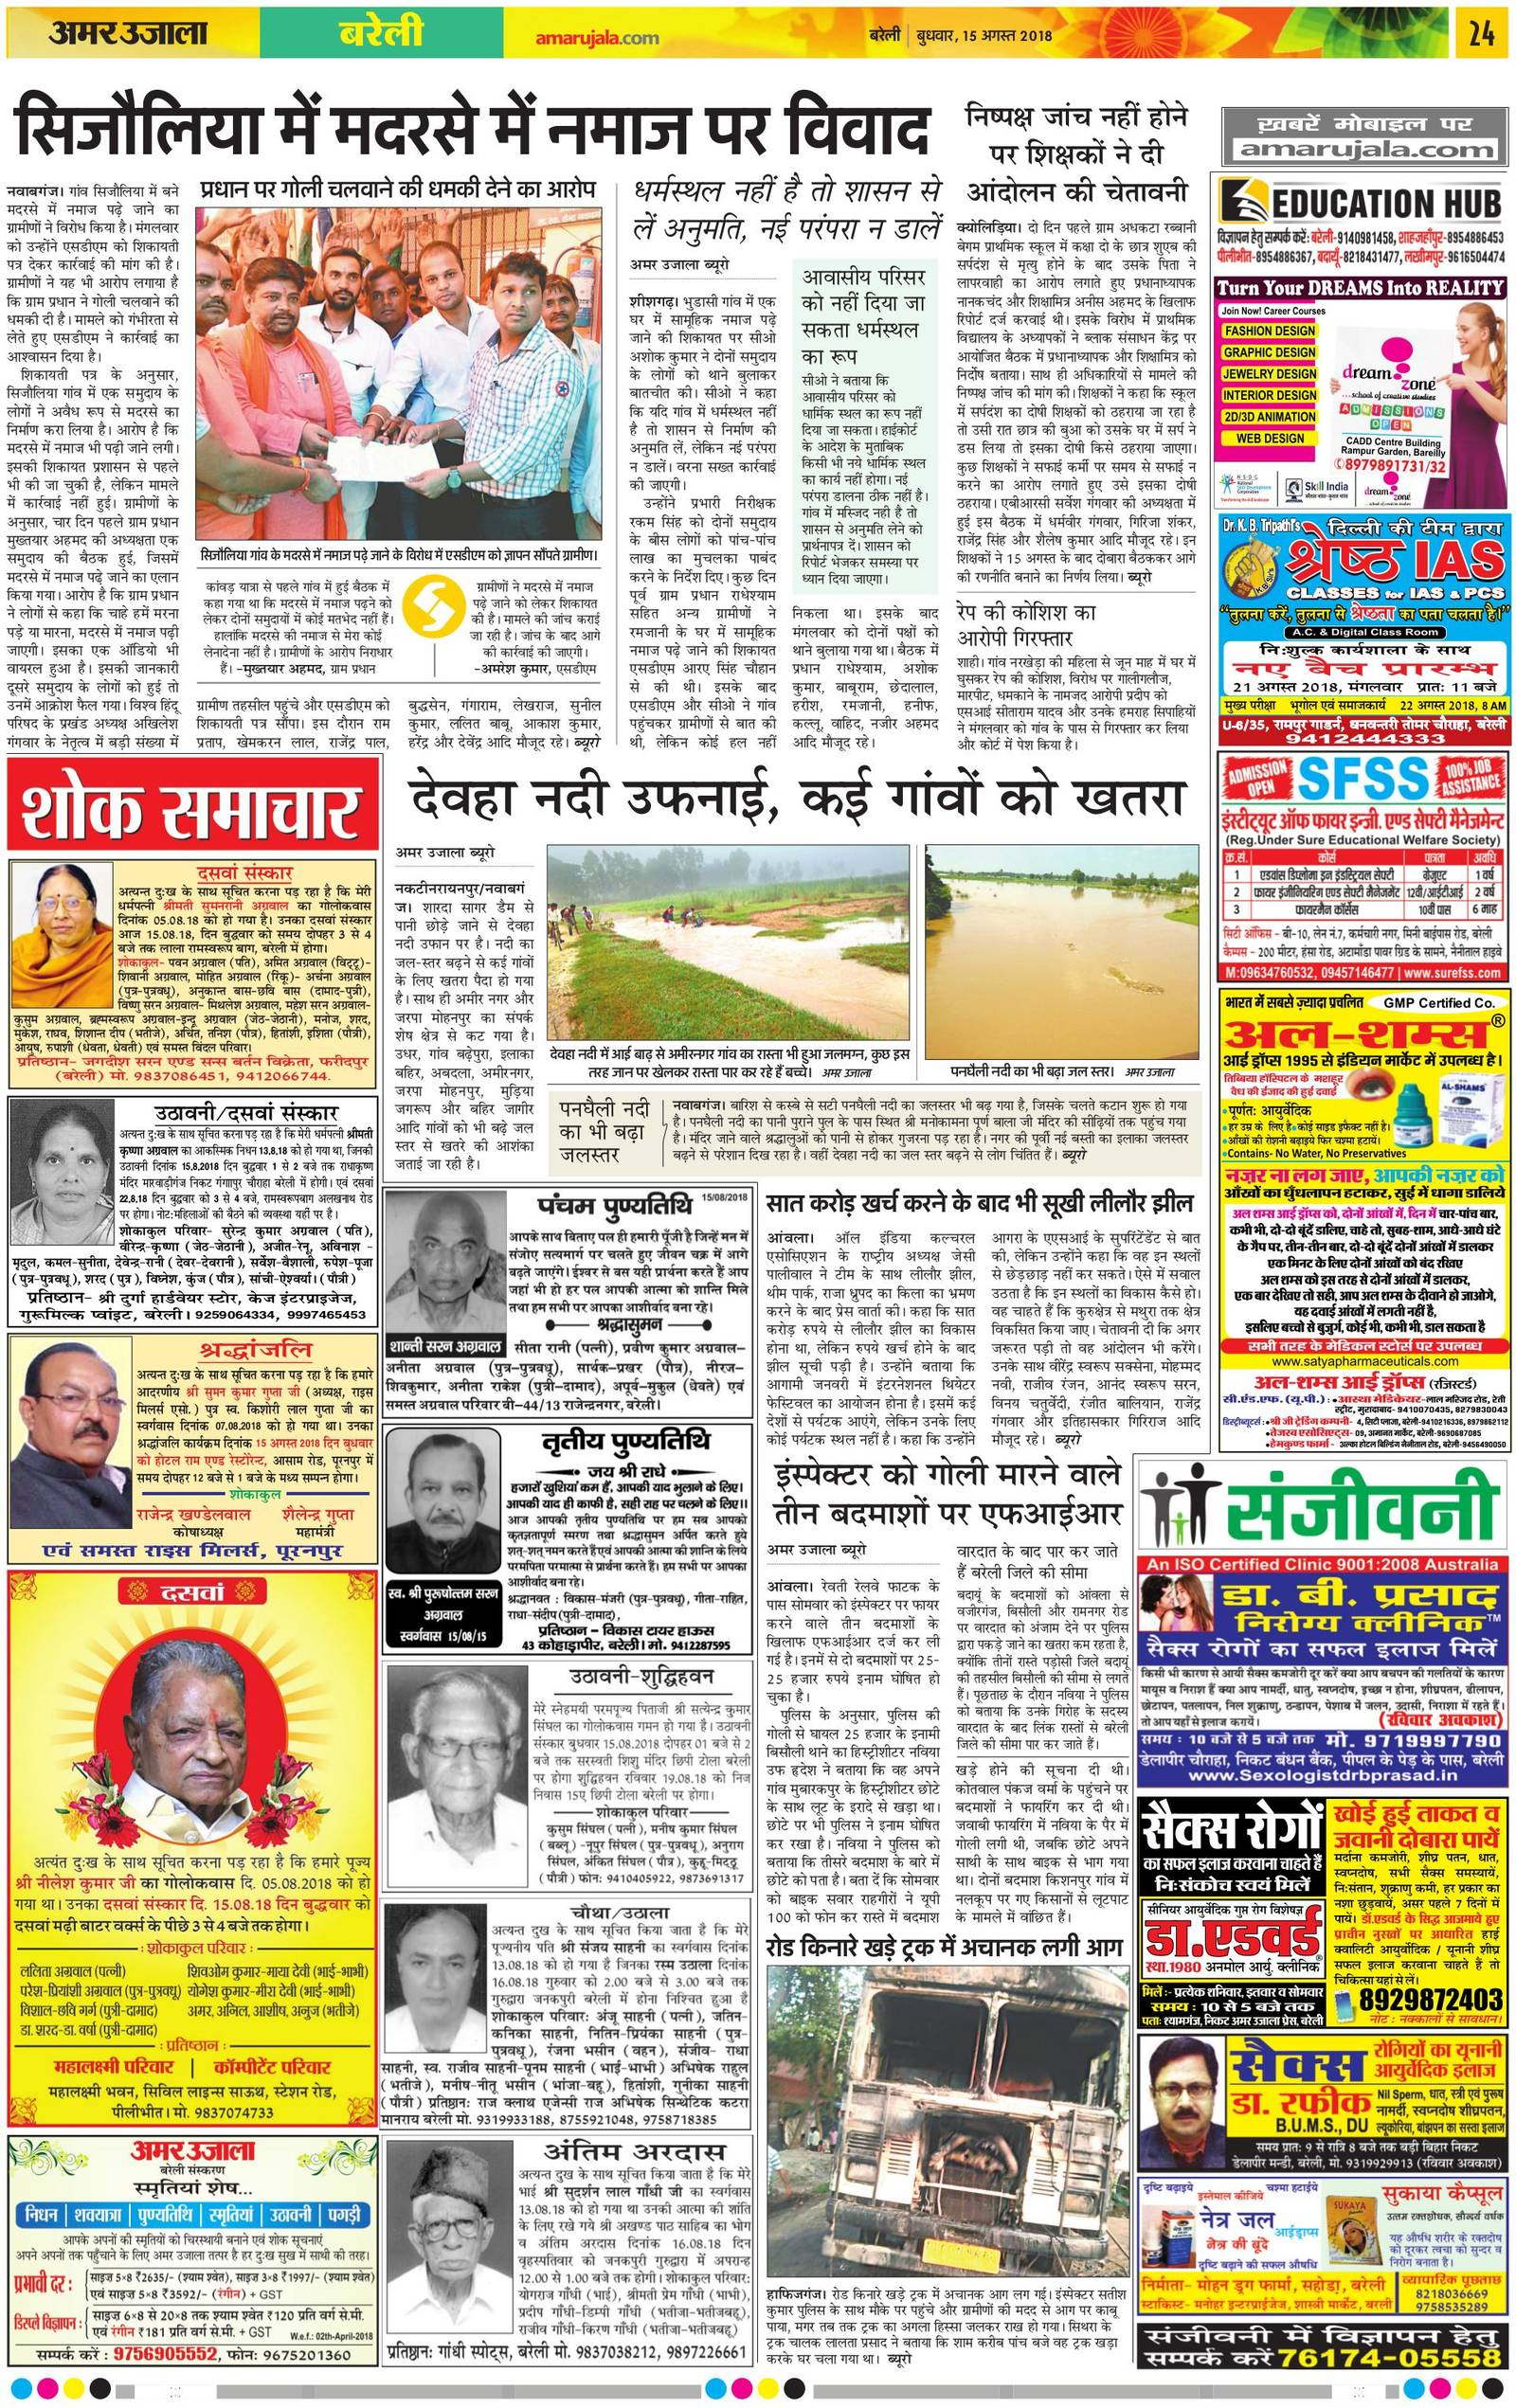 Amar ujala news paper in hindi today up bareilly